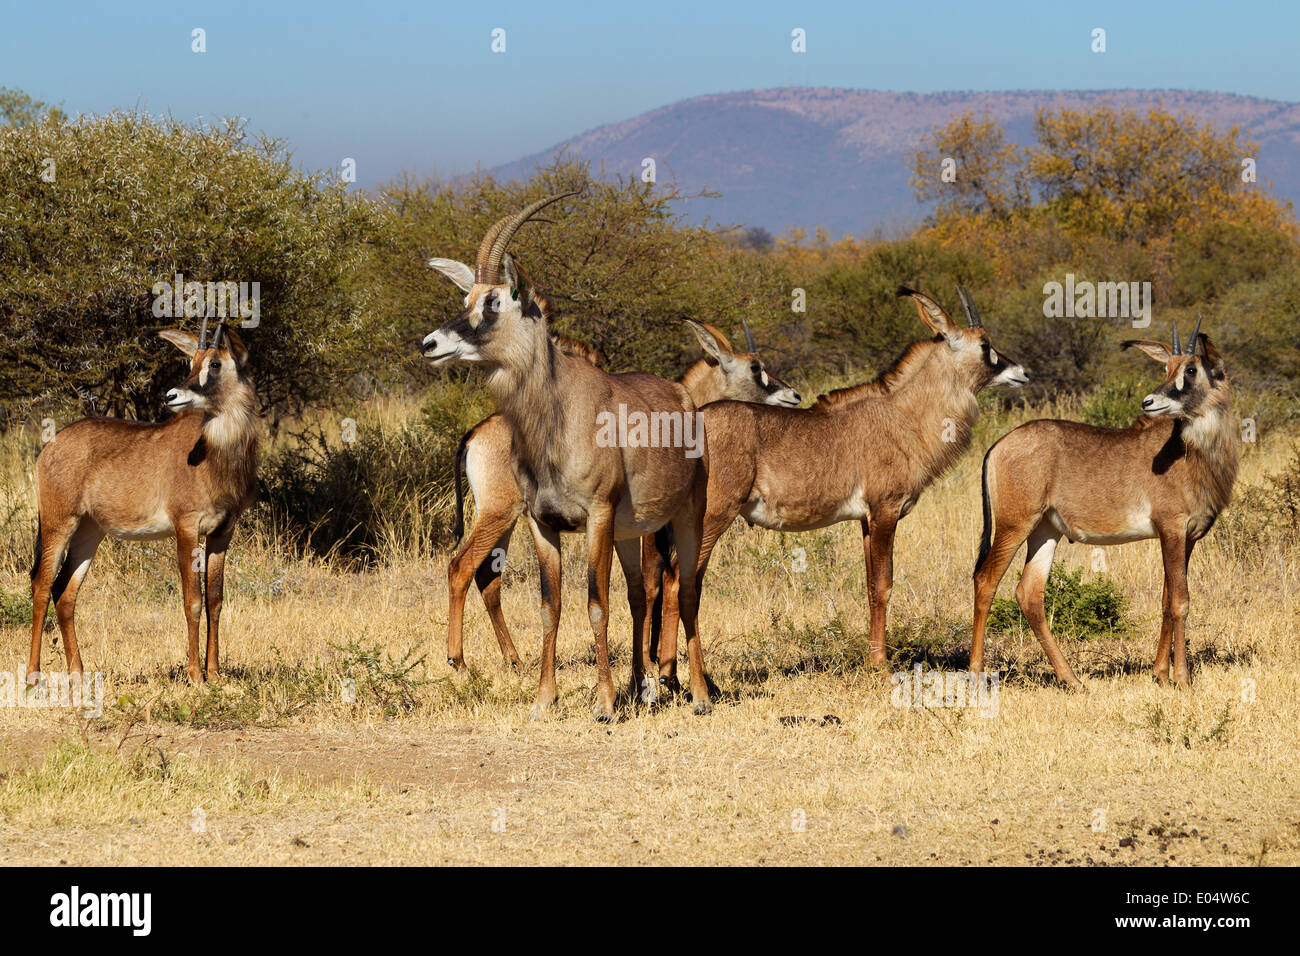 Roan antelope (Hippotragus equinus).Group of females and juveniles.South Africa - Stock Image